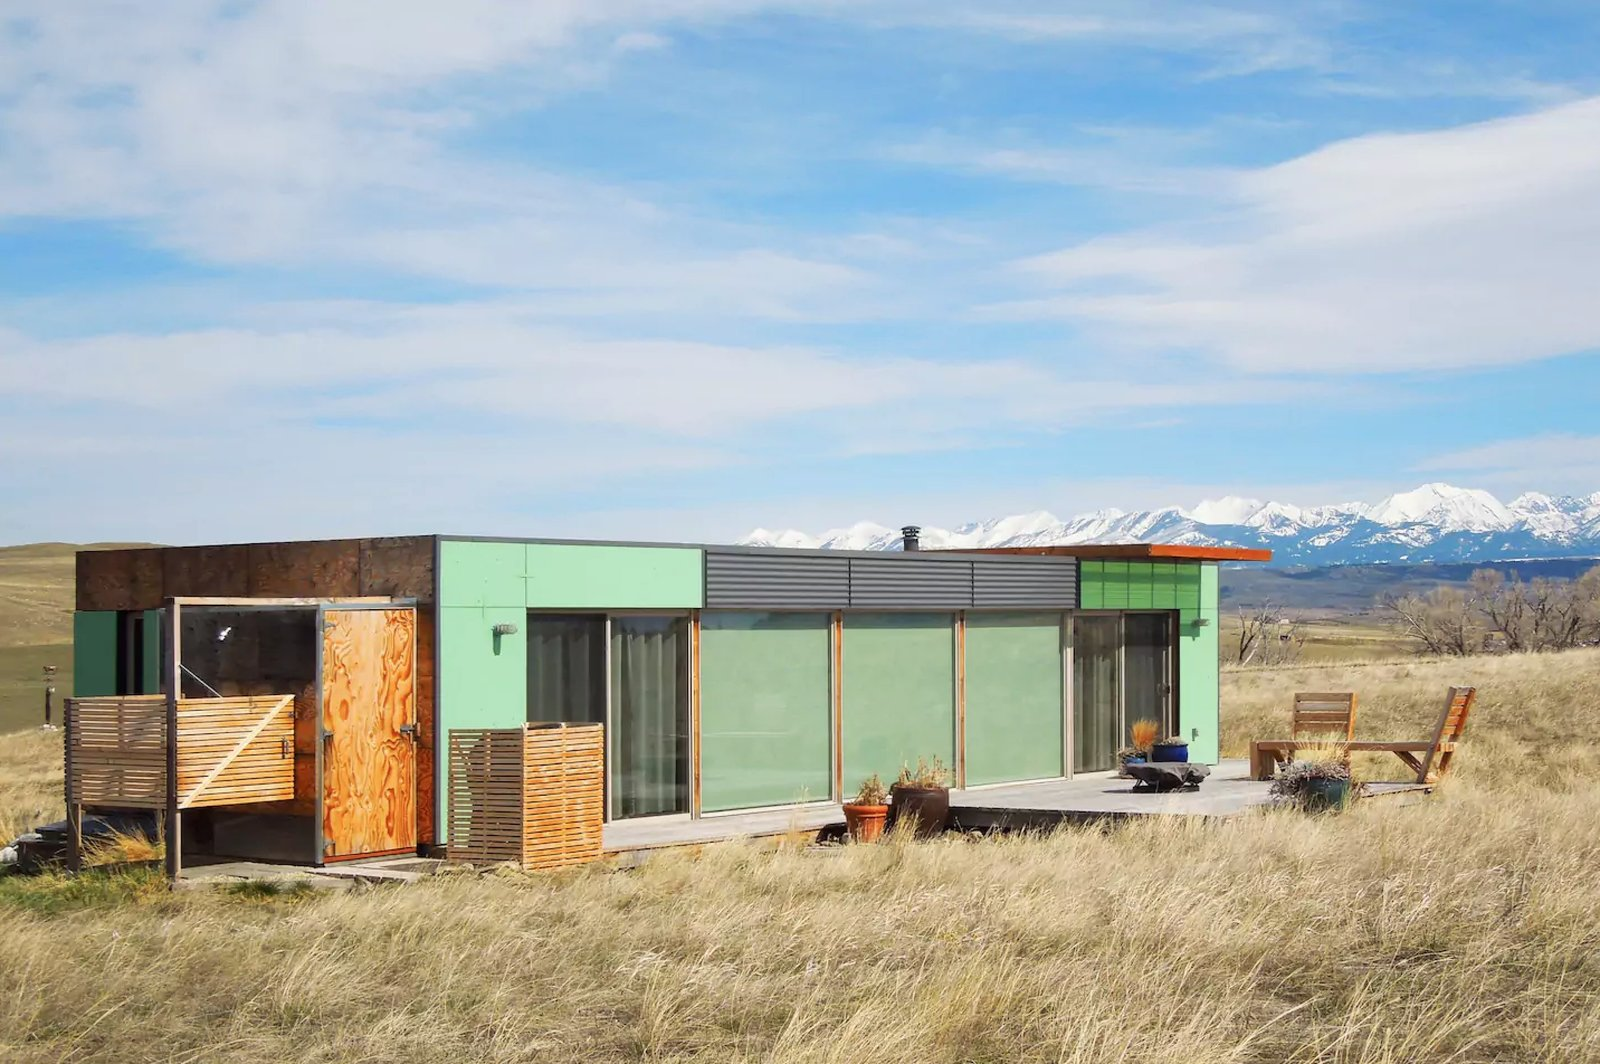 "Shipping Container Home Livingston, MT, United States  Welcome to the ""Little Box on the Prairie"". This unique, modern house is made from two recycled shipping containers, situated on 10-acres of rolling prairie, just North of Livingston Montana. It's a 700 square-foot mix of rustic coziness and clean, modern design. Many of the finishes such as the redwood flooring and plywood wall panels were salvaged off site, recycled and reused. The outside deck is perfect for chatting over morning coffee, an evening glass of wine, gazing at the Absaroka Mountains and likely spotting a deer or antelope. The house comfortably sleeps 2, and a 3rd can sleep on the sofa if needed.  https://www.airbnb.com/rooms/3292920  Amazing Examples of Shipping Container Architecture by Diana Budds from Great Airbnbs"